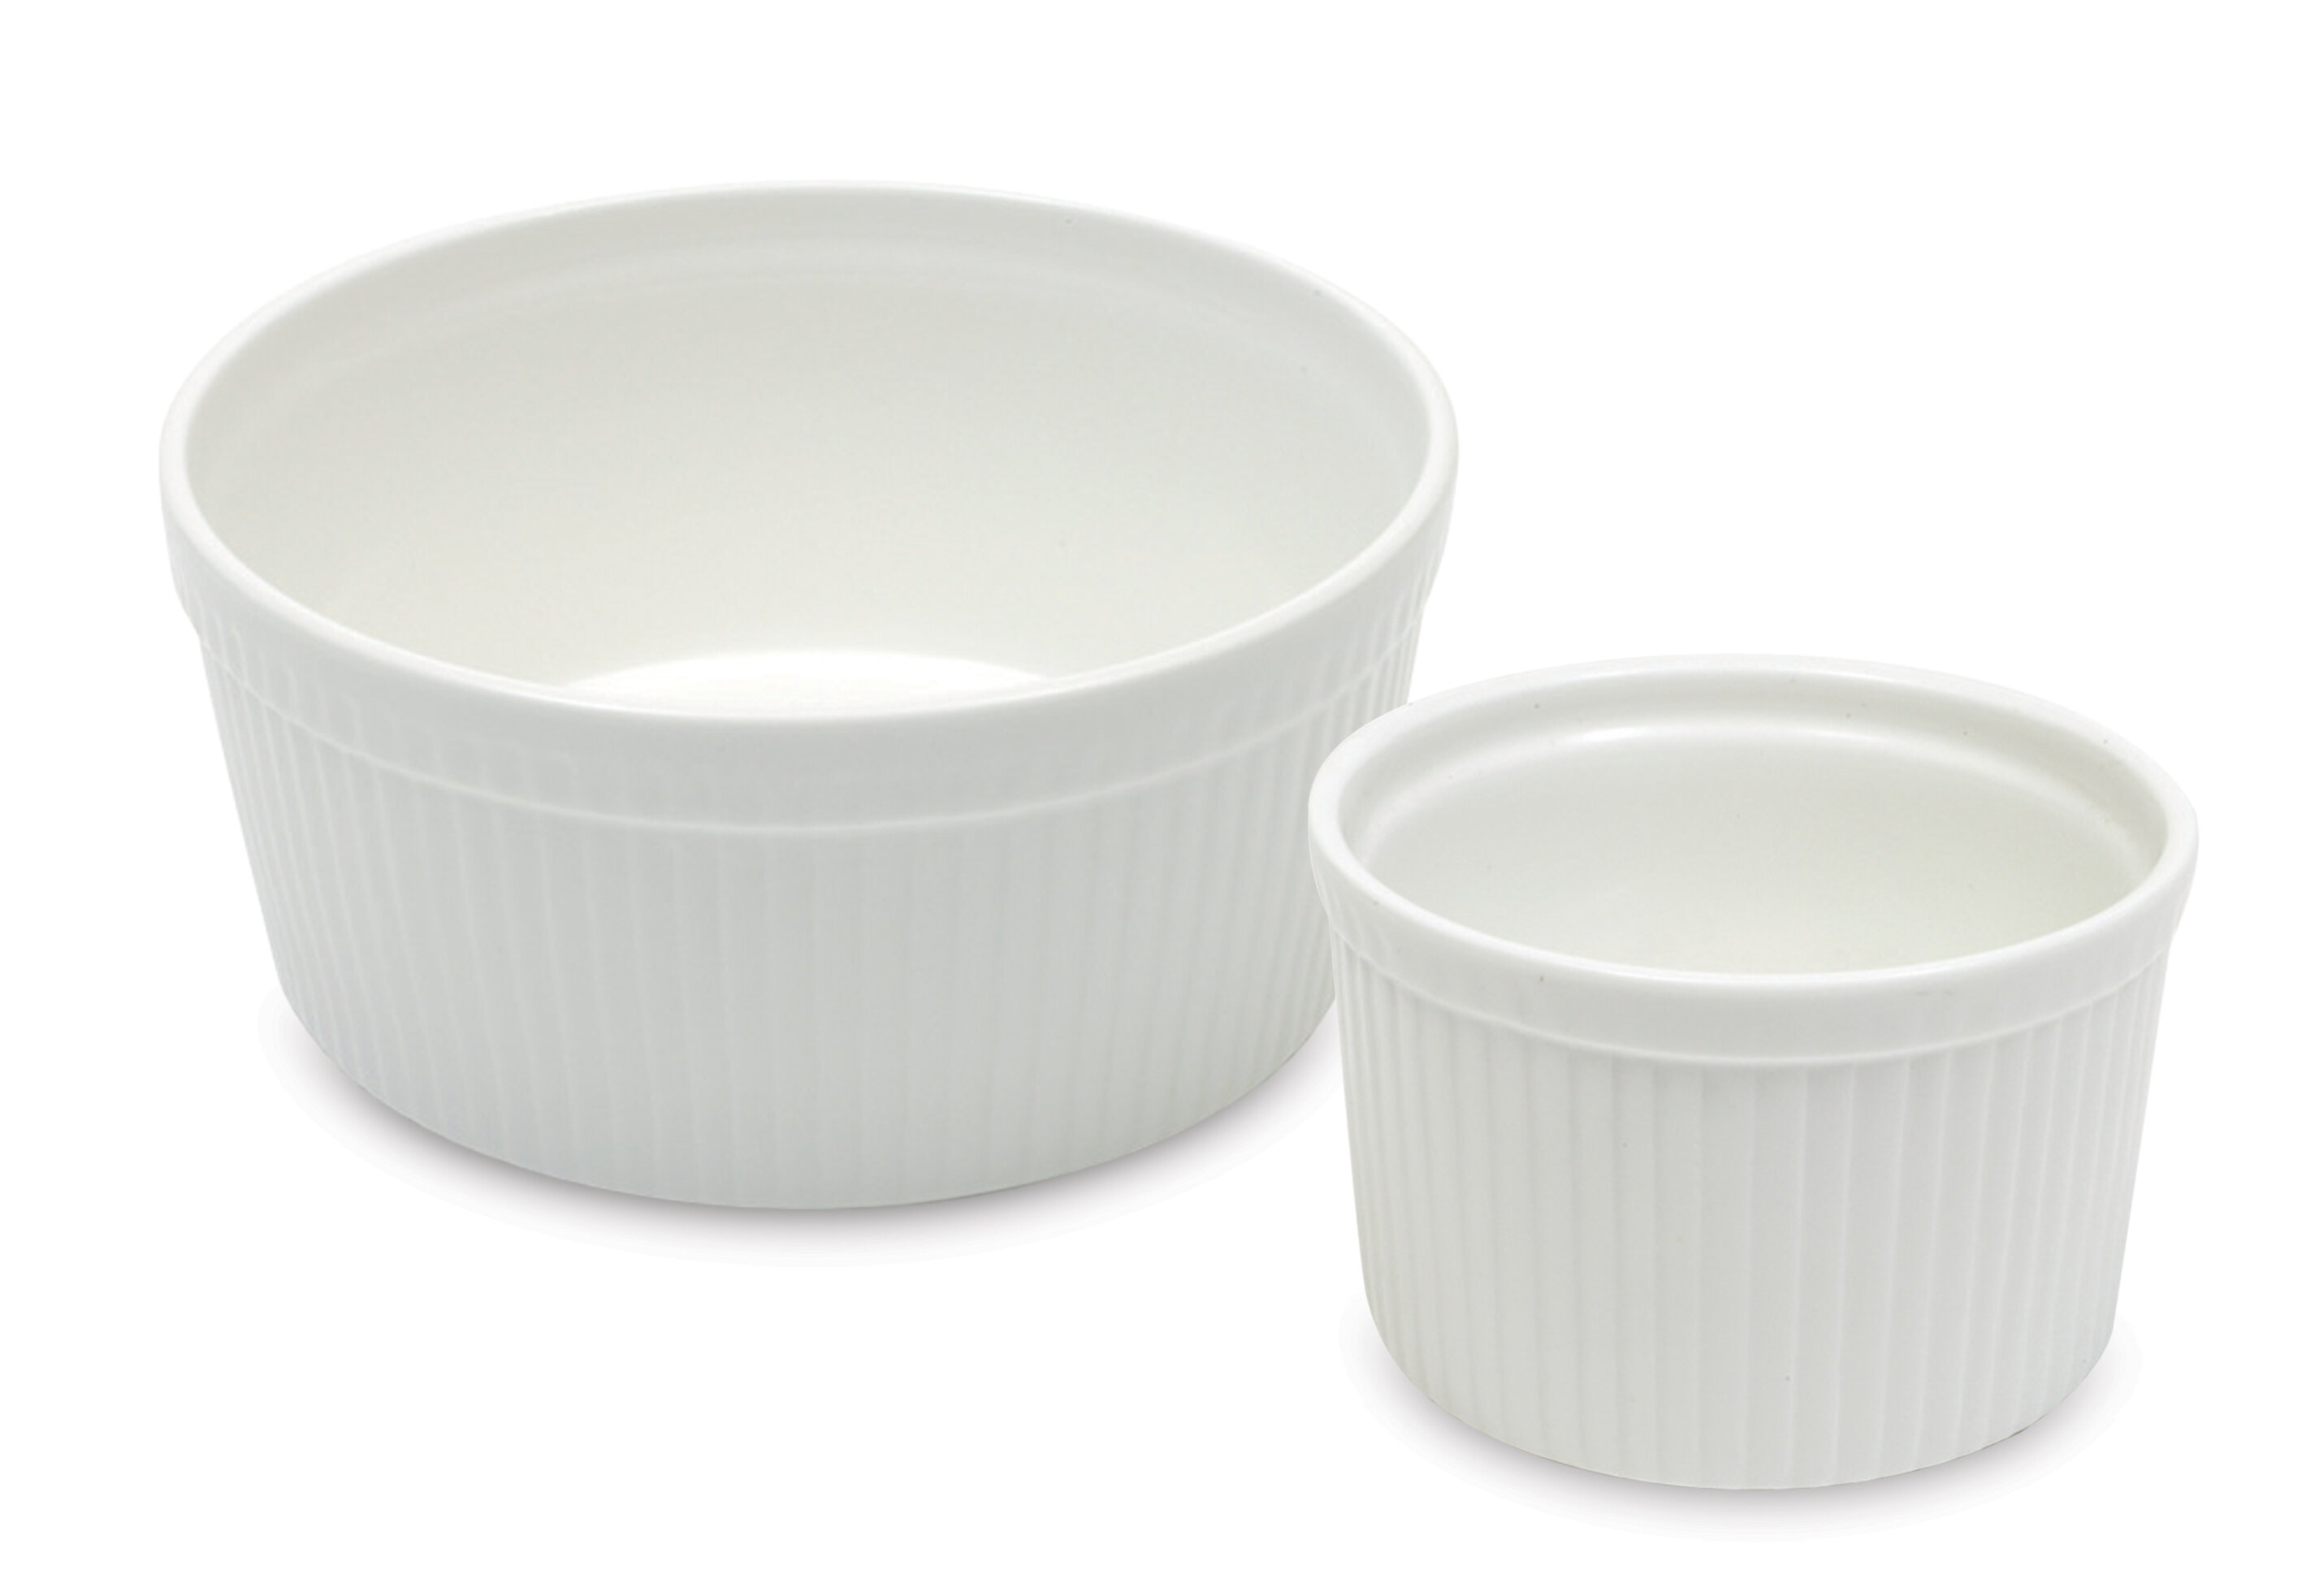 Maxwell And Williams Basics Slate 5 Piece Rectangular Dipping Set White Food Service Equipment Supplies Assetrak Serving Dishes Trays Platters